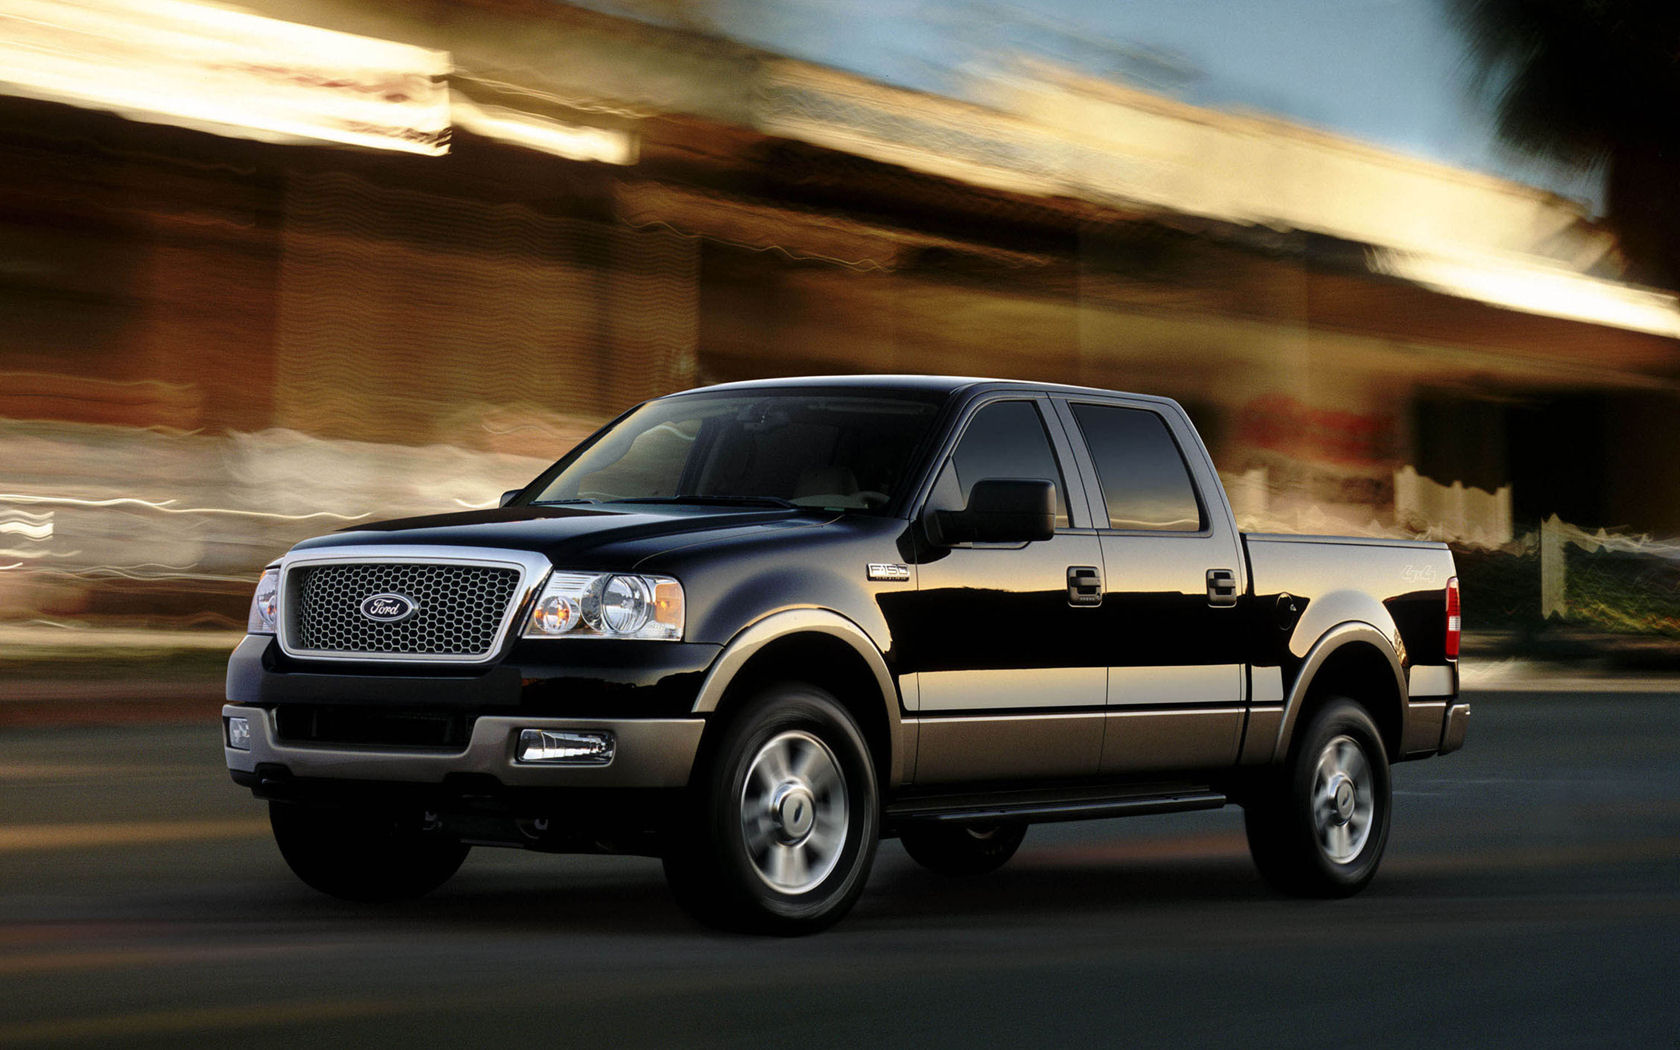 Ford  gt  Ford F150  gt  Ford F150 Desktop Wallpapers  gt  Widescreen WallpaperFord F150 Wallpaper